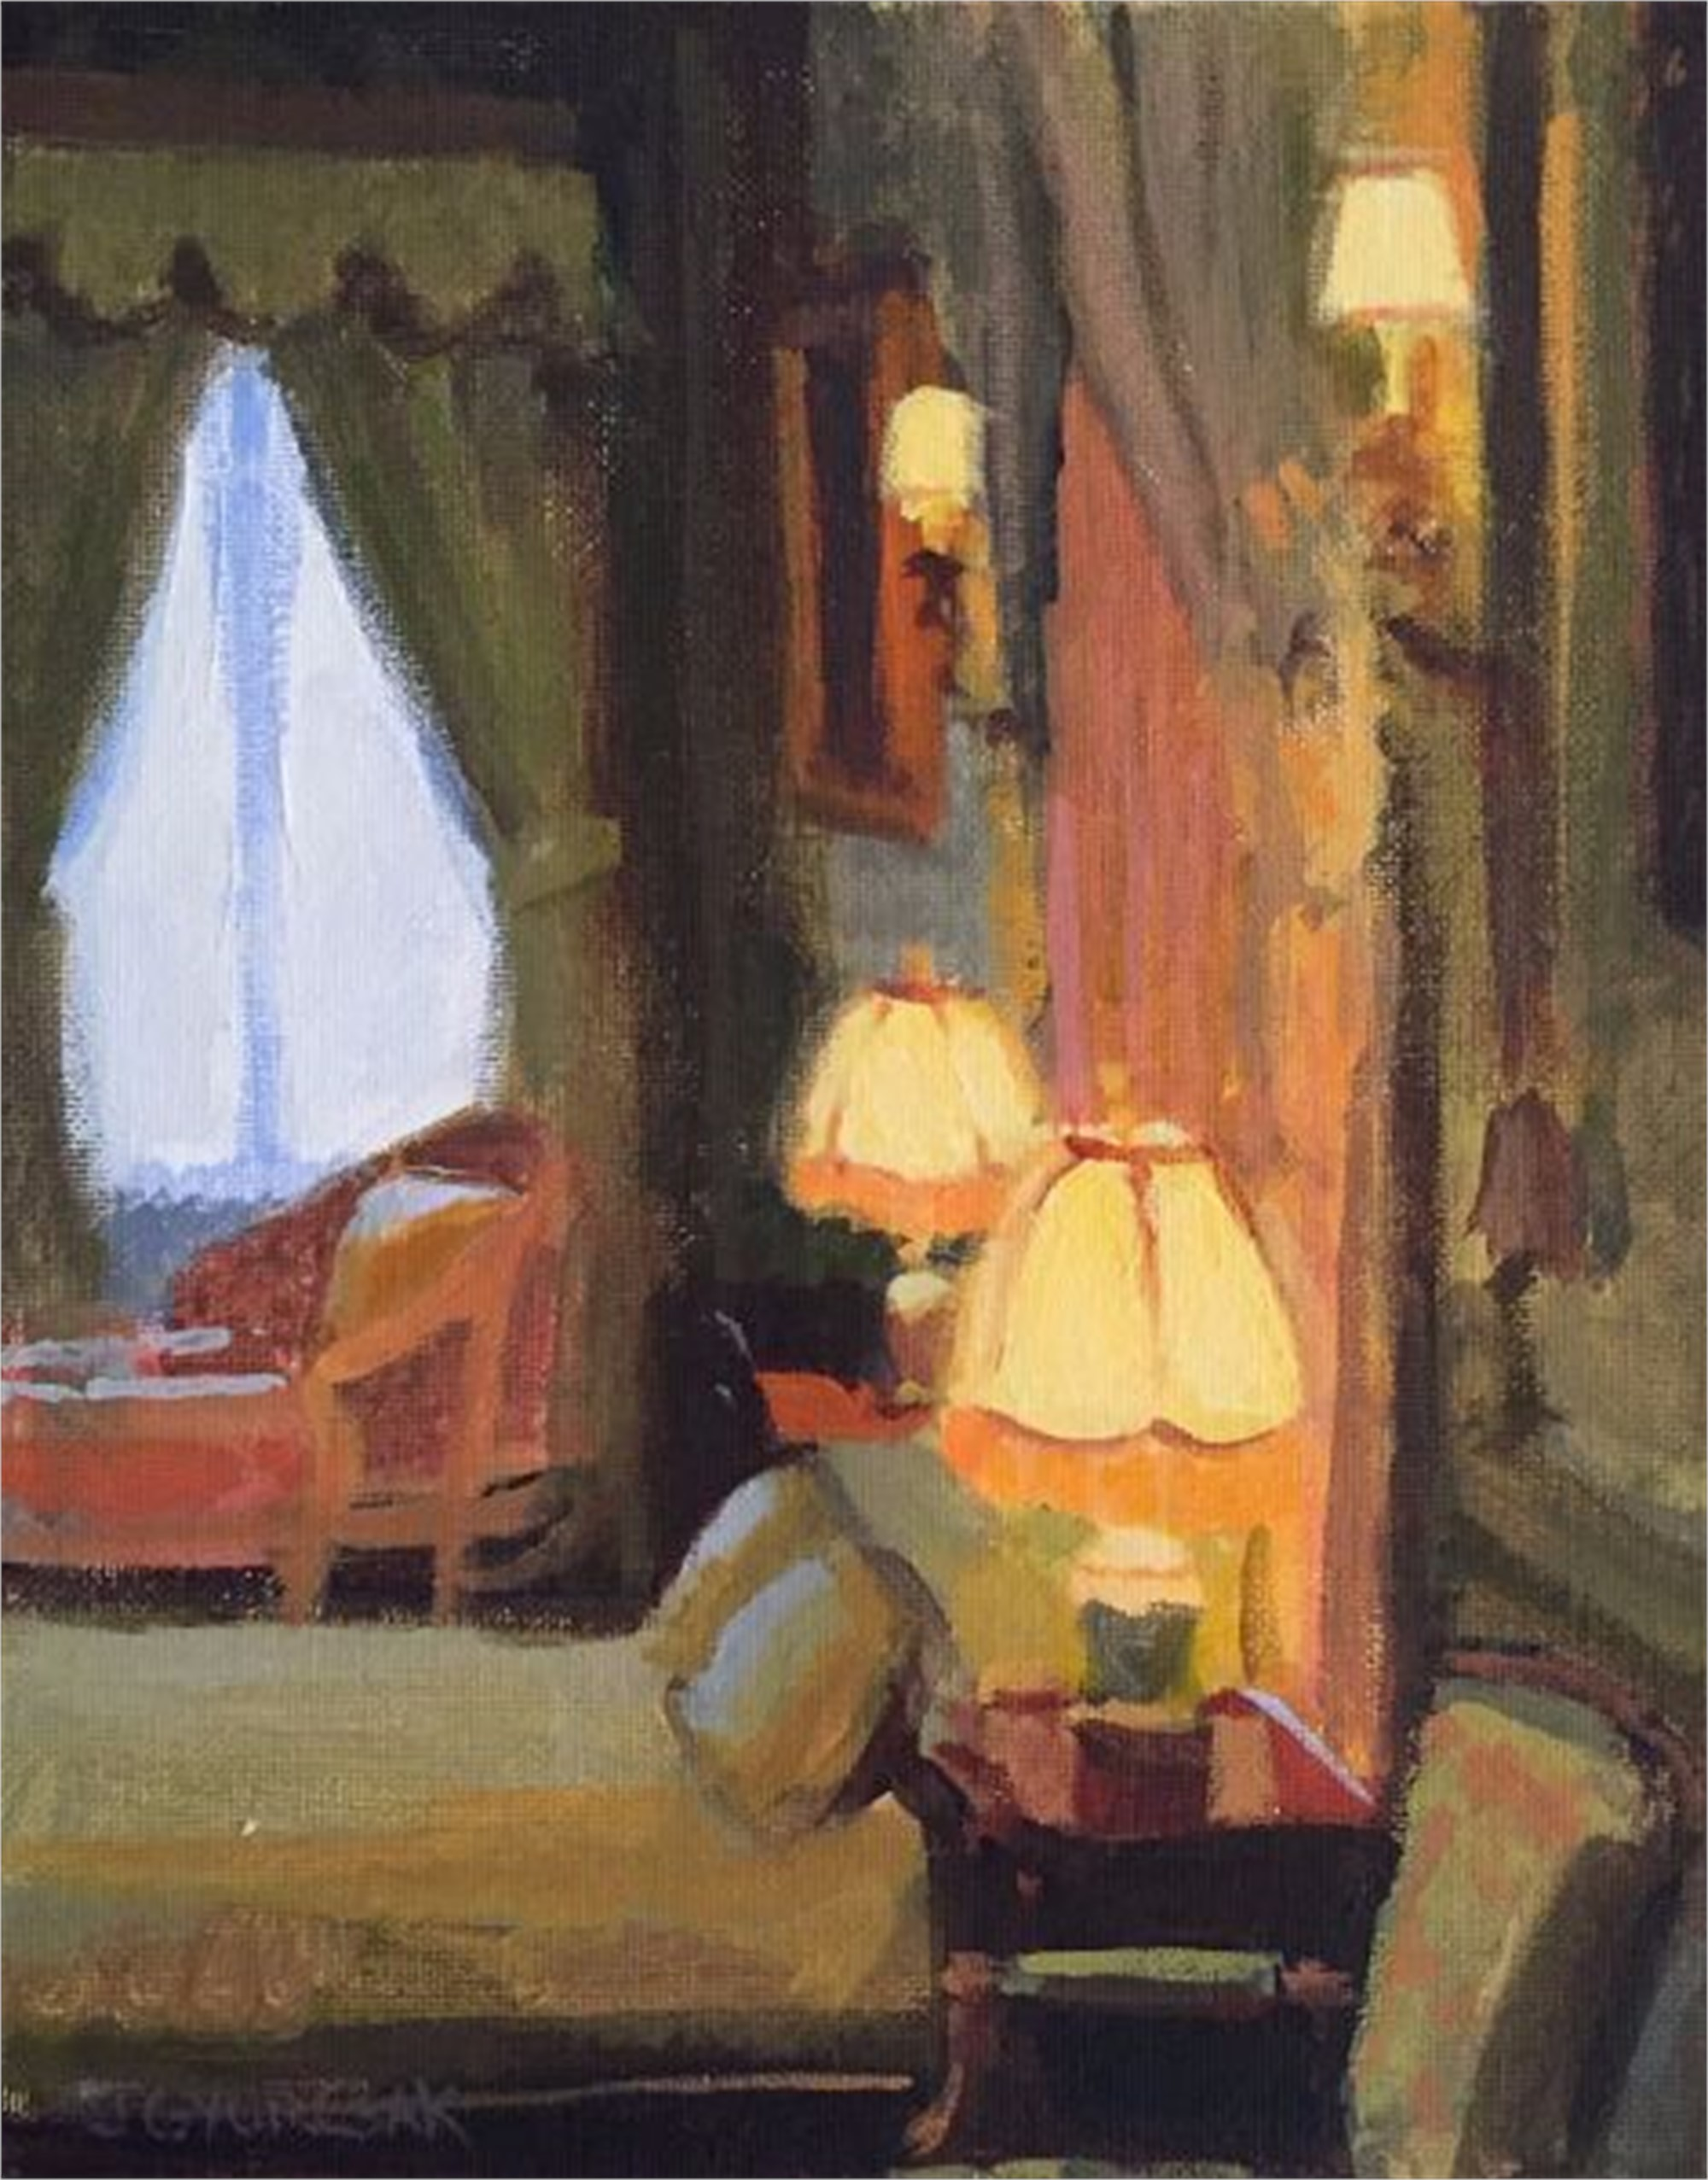 Lamp Lit Room by Joe Gyurcsak